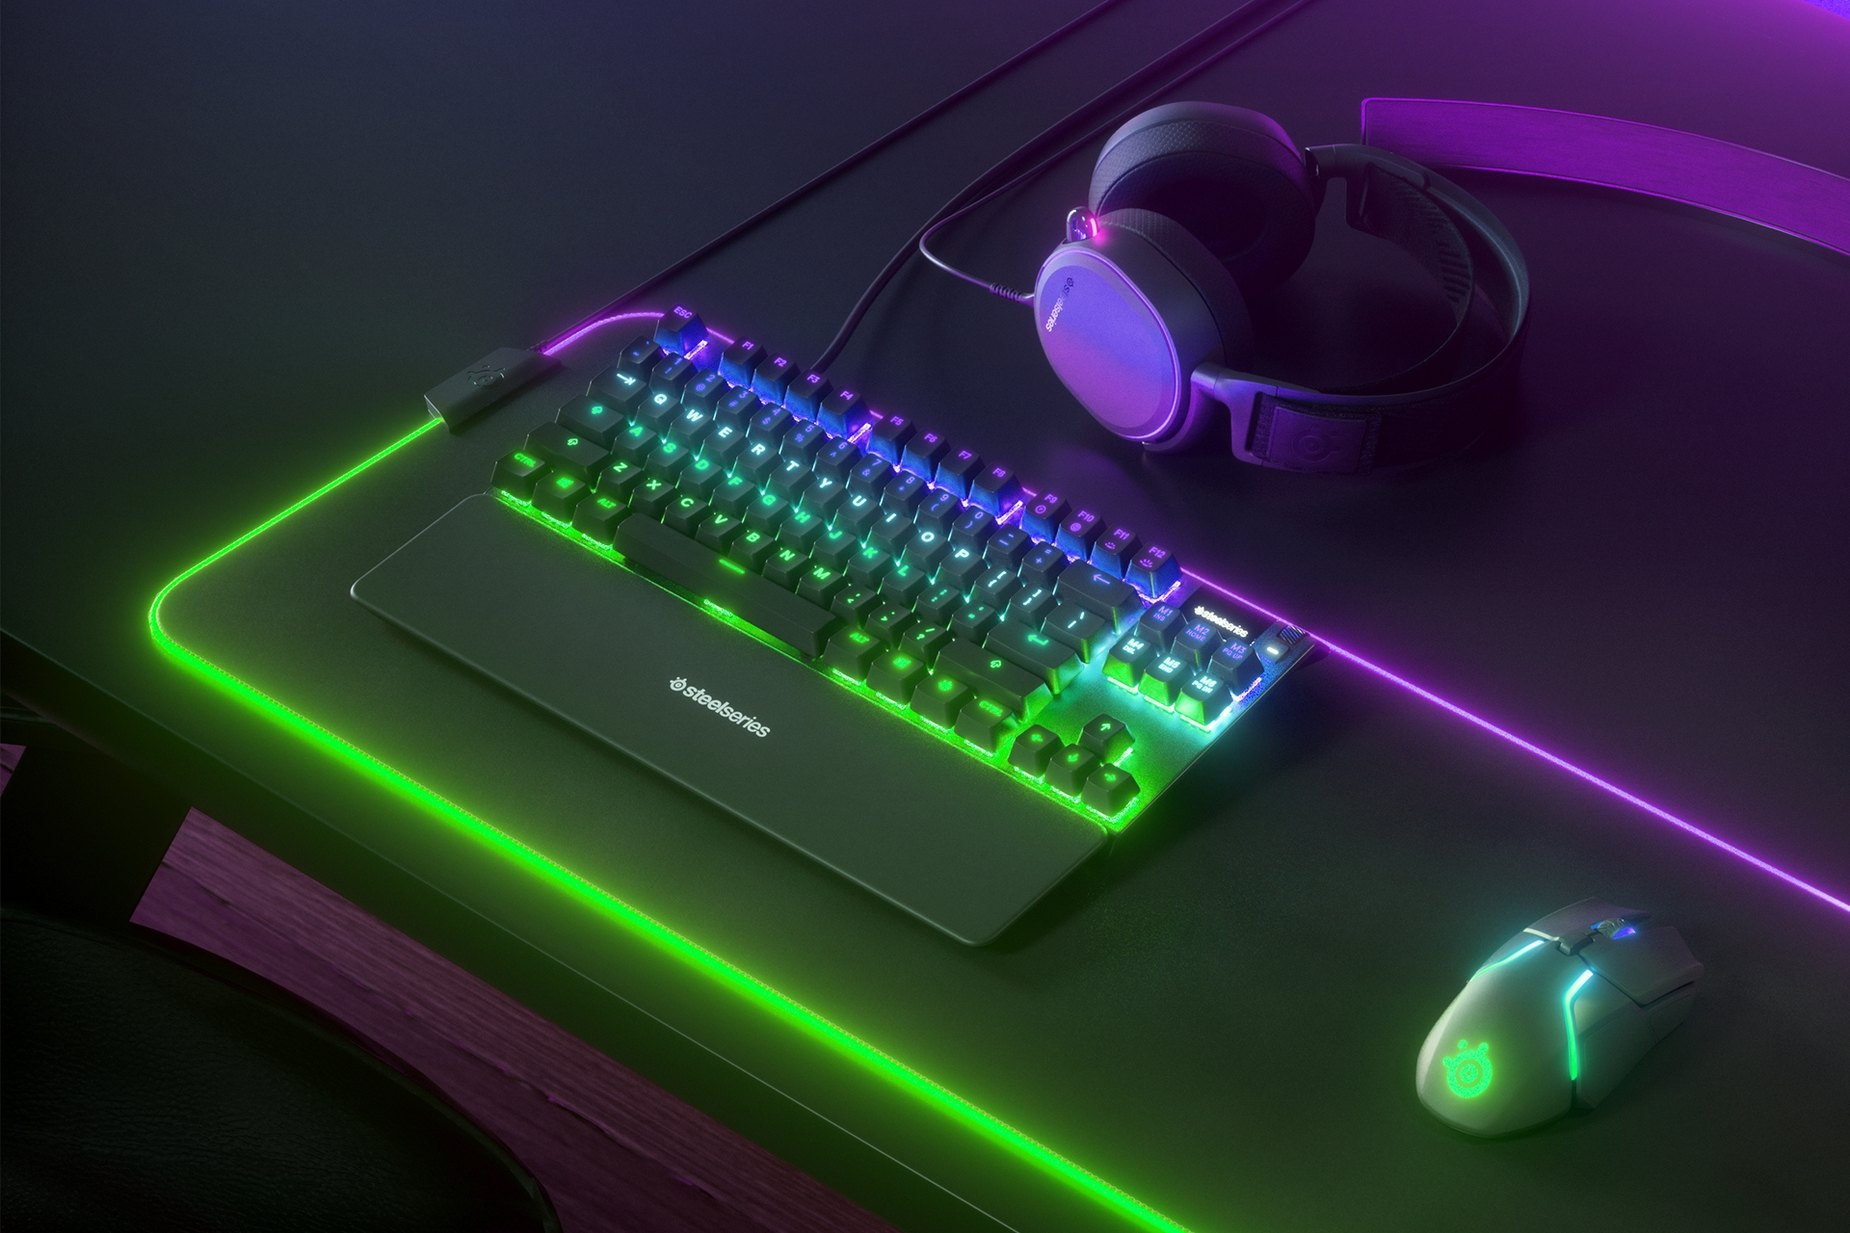 UK English - Apex Pro TKL gaming keyboard on a desk with a gaming mouse, both on top of a large mousepad and a SteelSeries gaming headset next to them